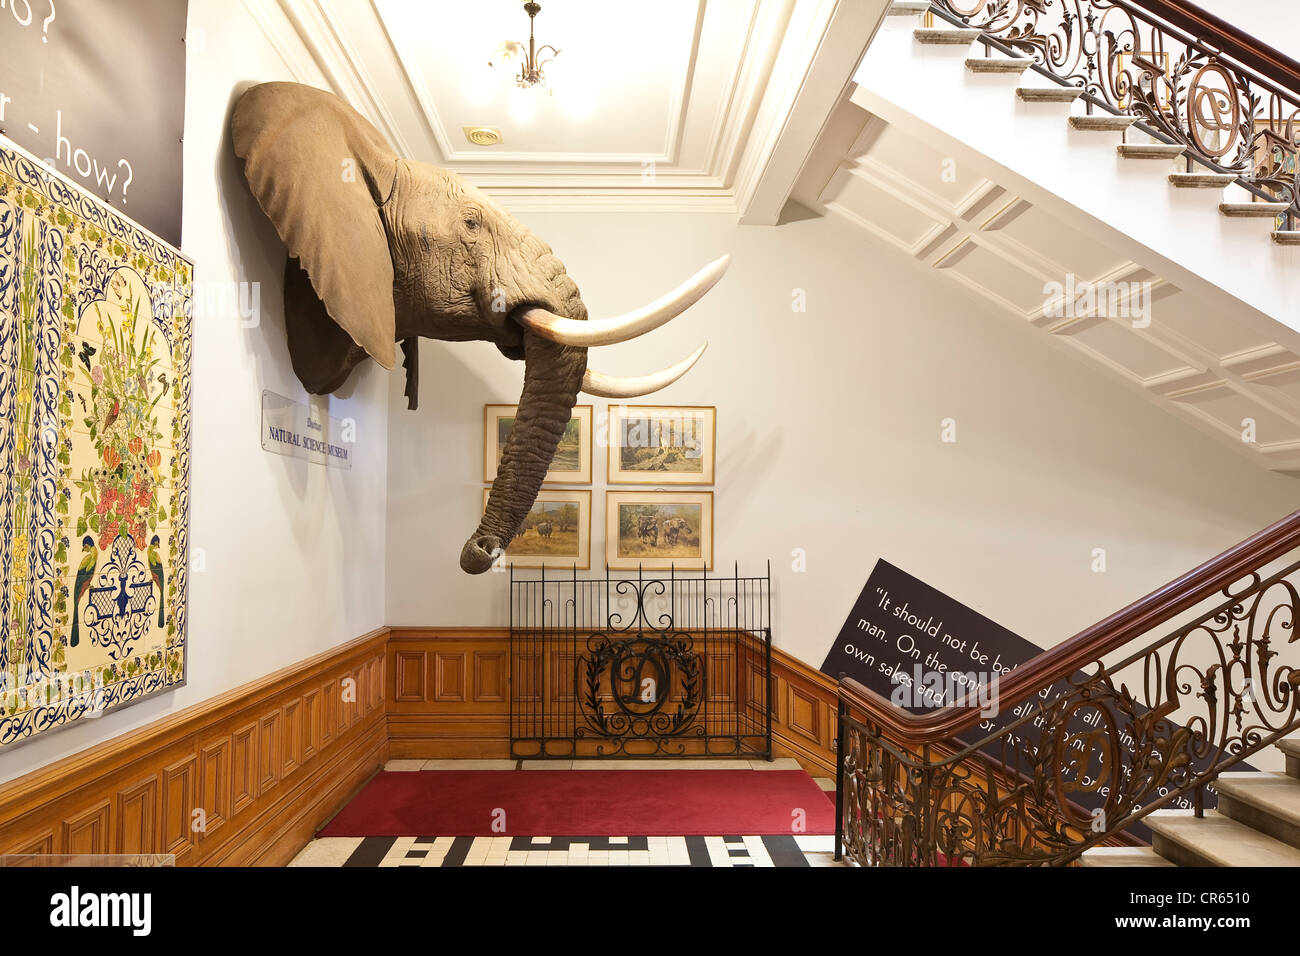 South africa kwazulu natal province durban city hall entrance of the natural science museum trophy of an elephant head